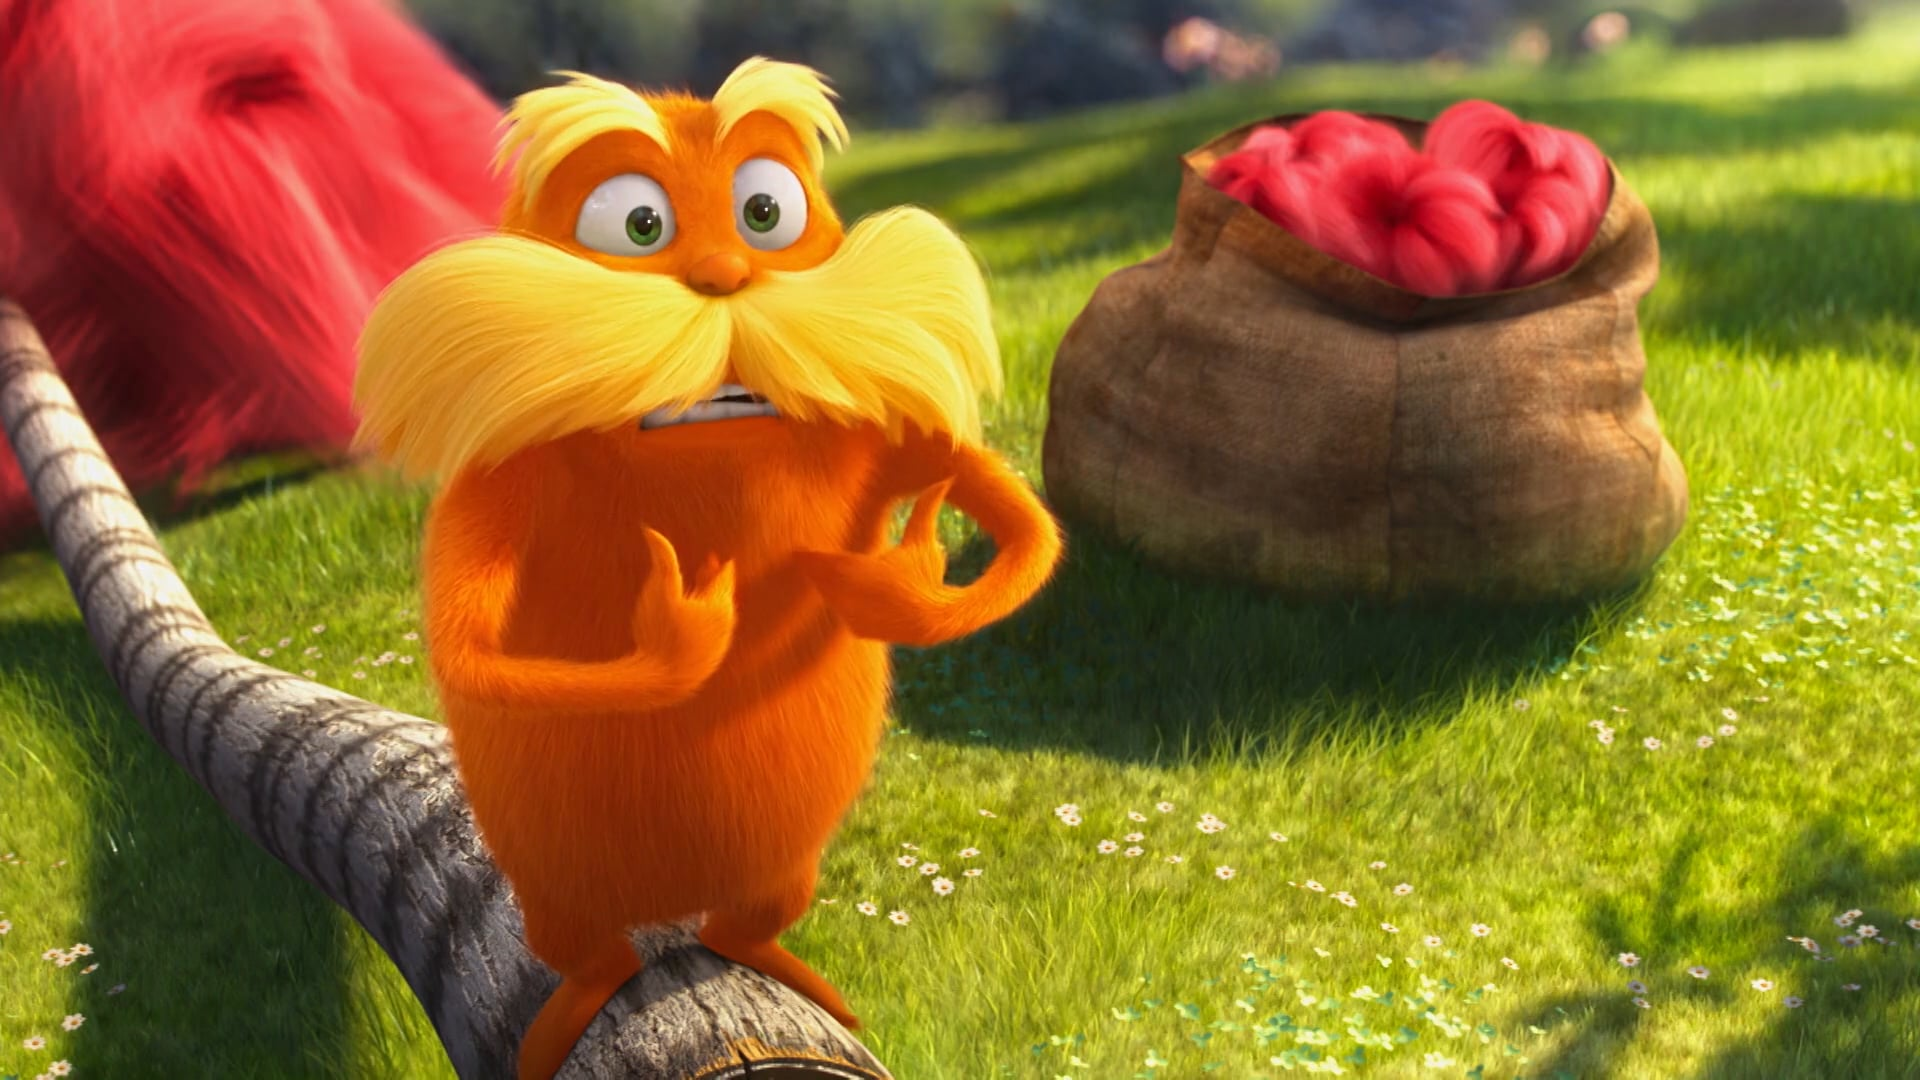 CINECLUB DOBLE FEATURE BARBIE & LORAX MEXICO